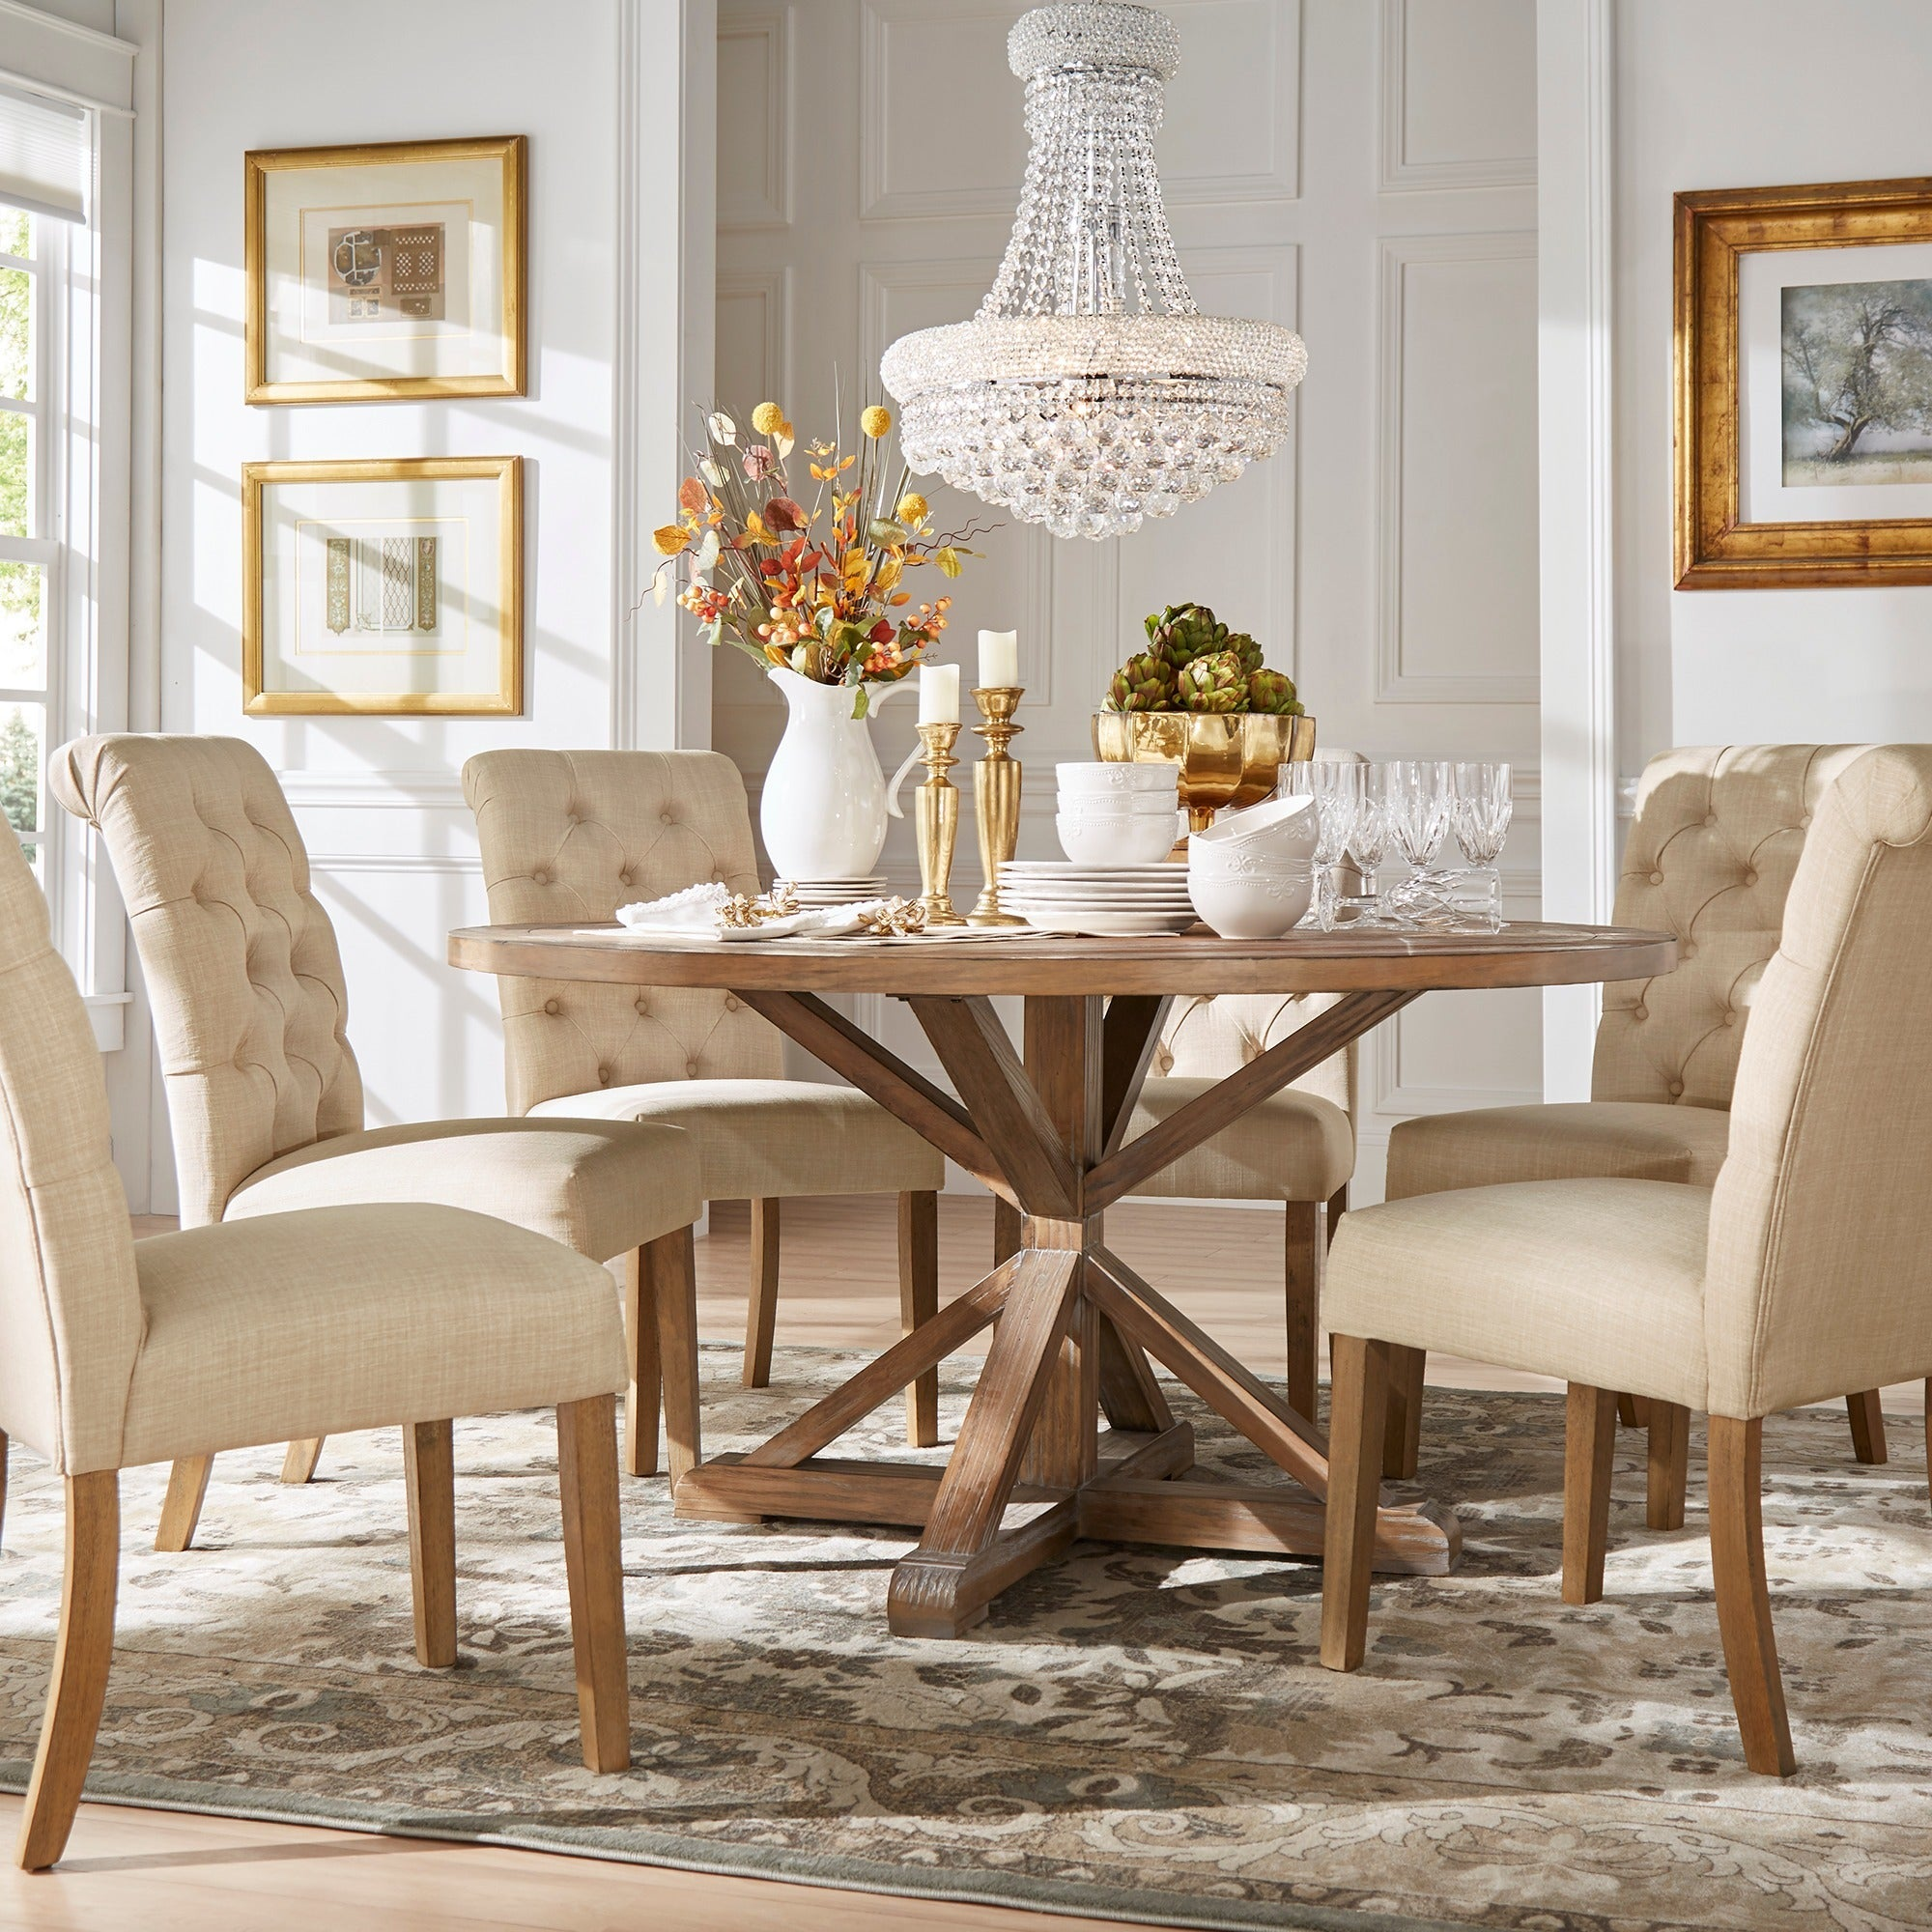 Benchwright Rustic X Base Round Pine Wood Rolled Back 7 Piece Dining Set By  INSPIRE Q Artisan   Free Shipping Today   Overstock.com   17228681